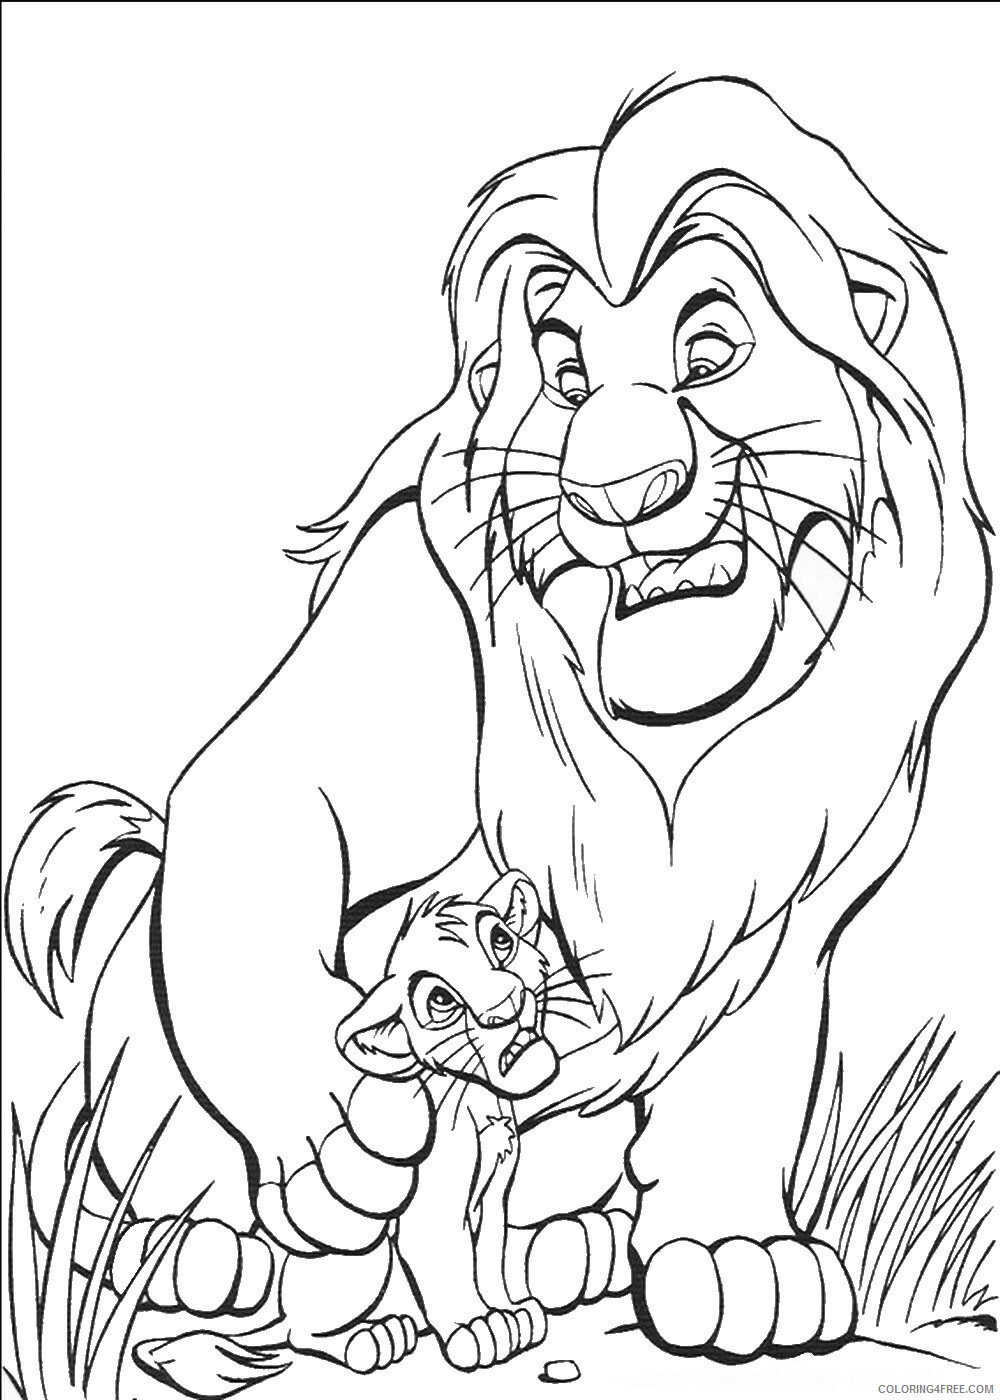 The Lion King Coloring Pages TV Film lionking_56 Printable 2020 09178 Coloring4free